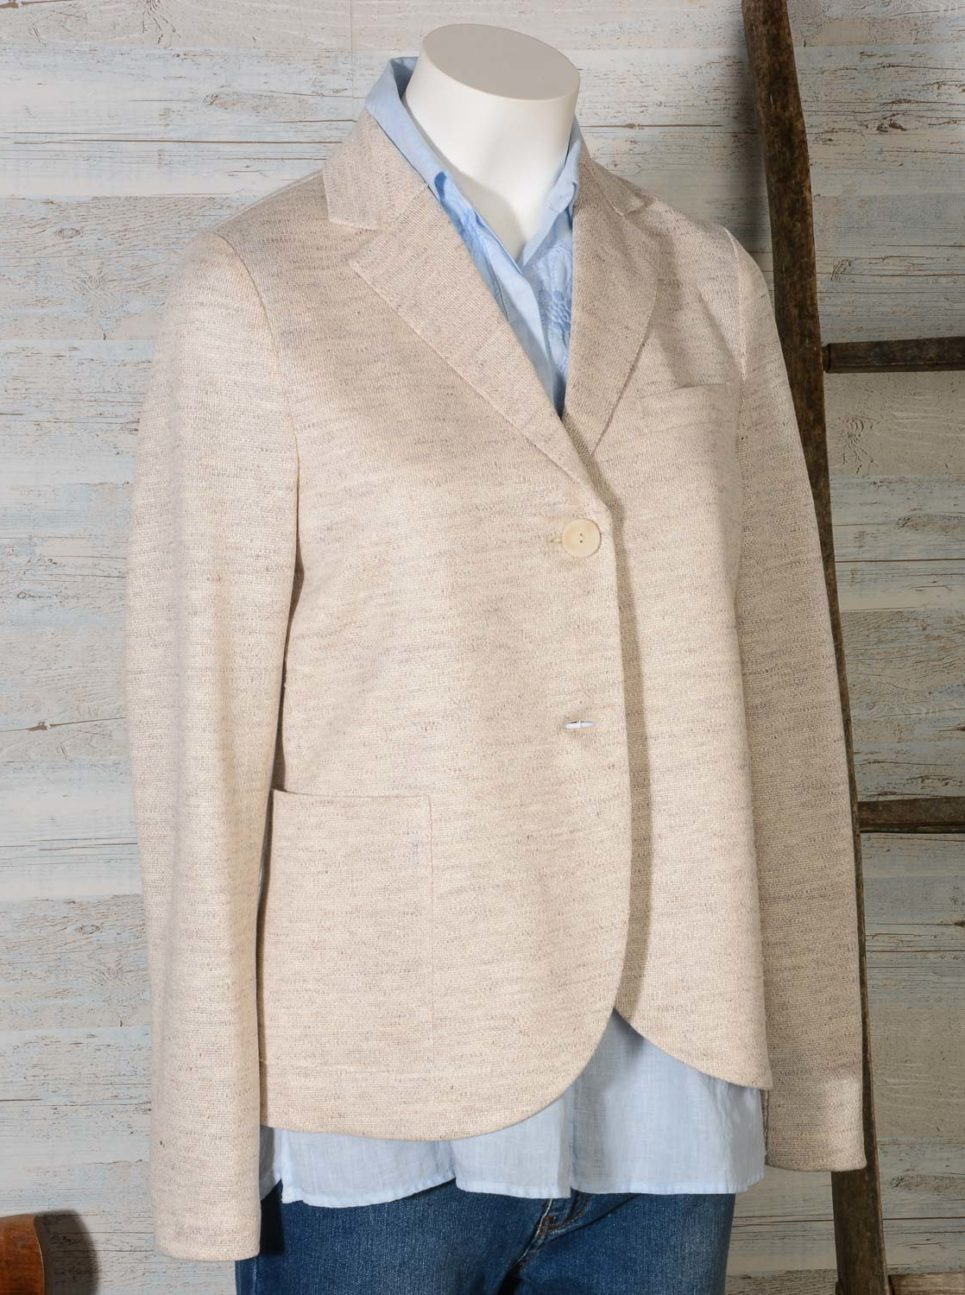 Blazer donna due bottoni in lino Jaspè HARRIS WHARF LONDON A3220PDD 101 Off White -7